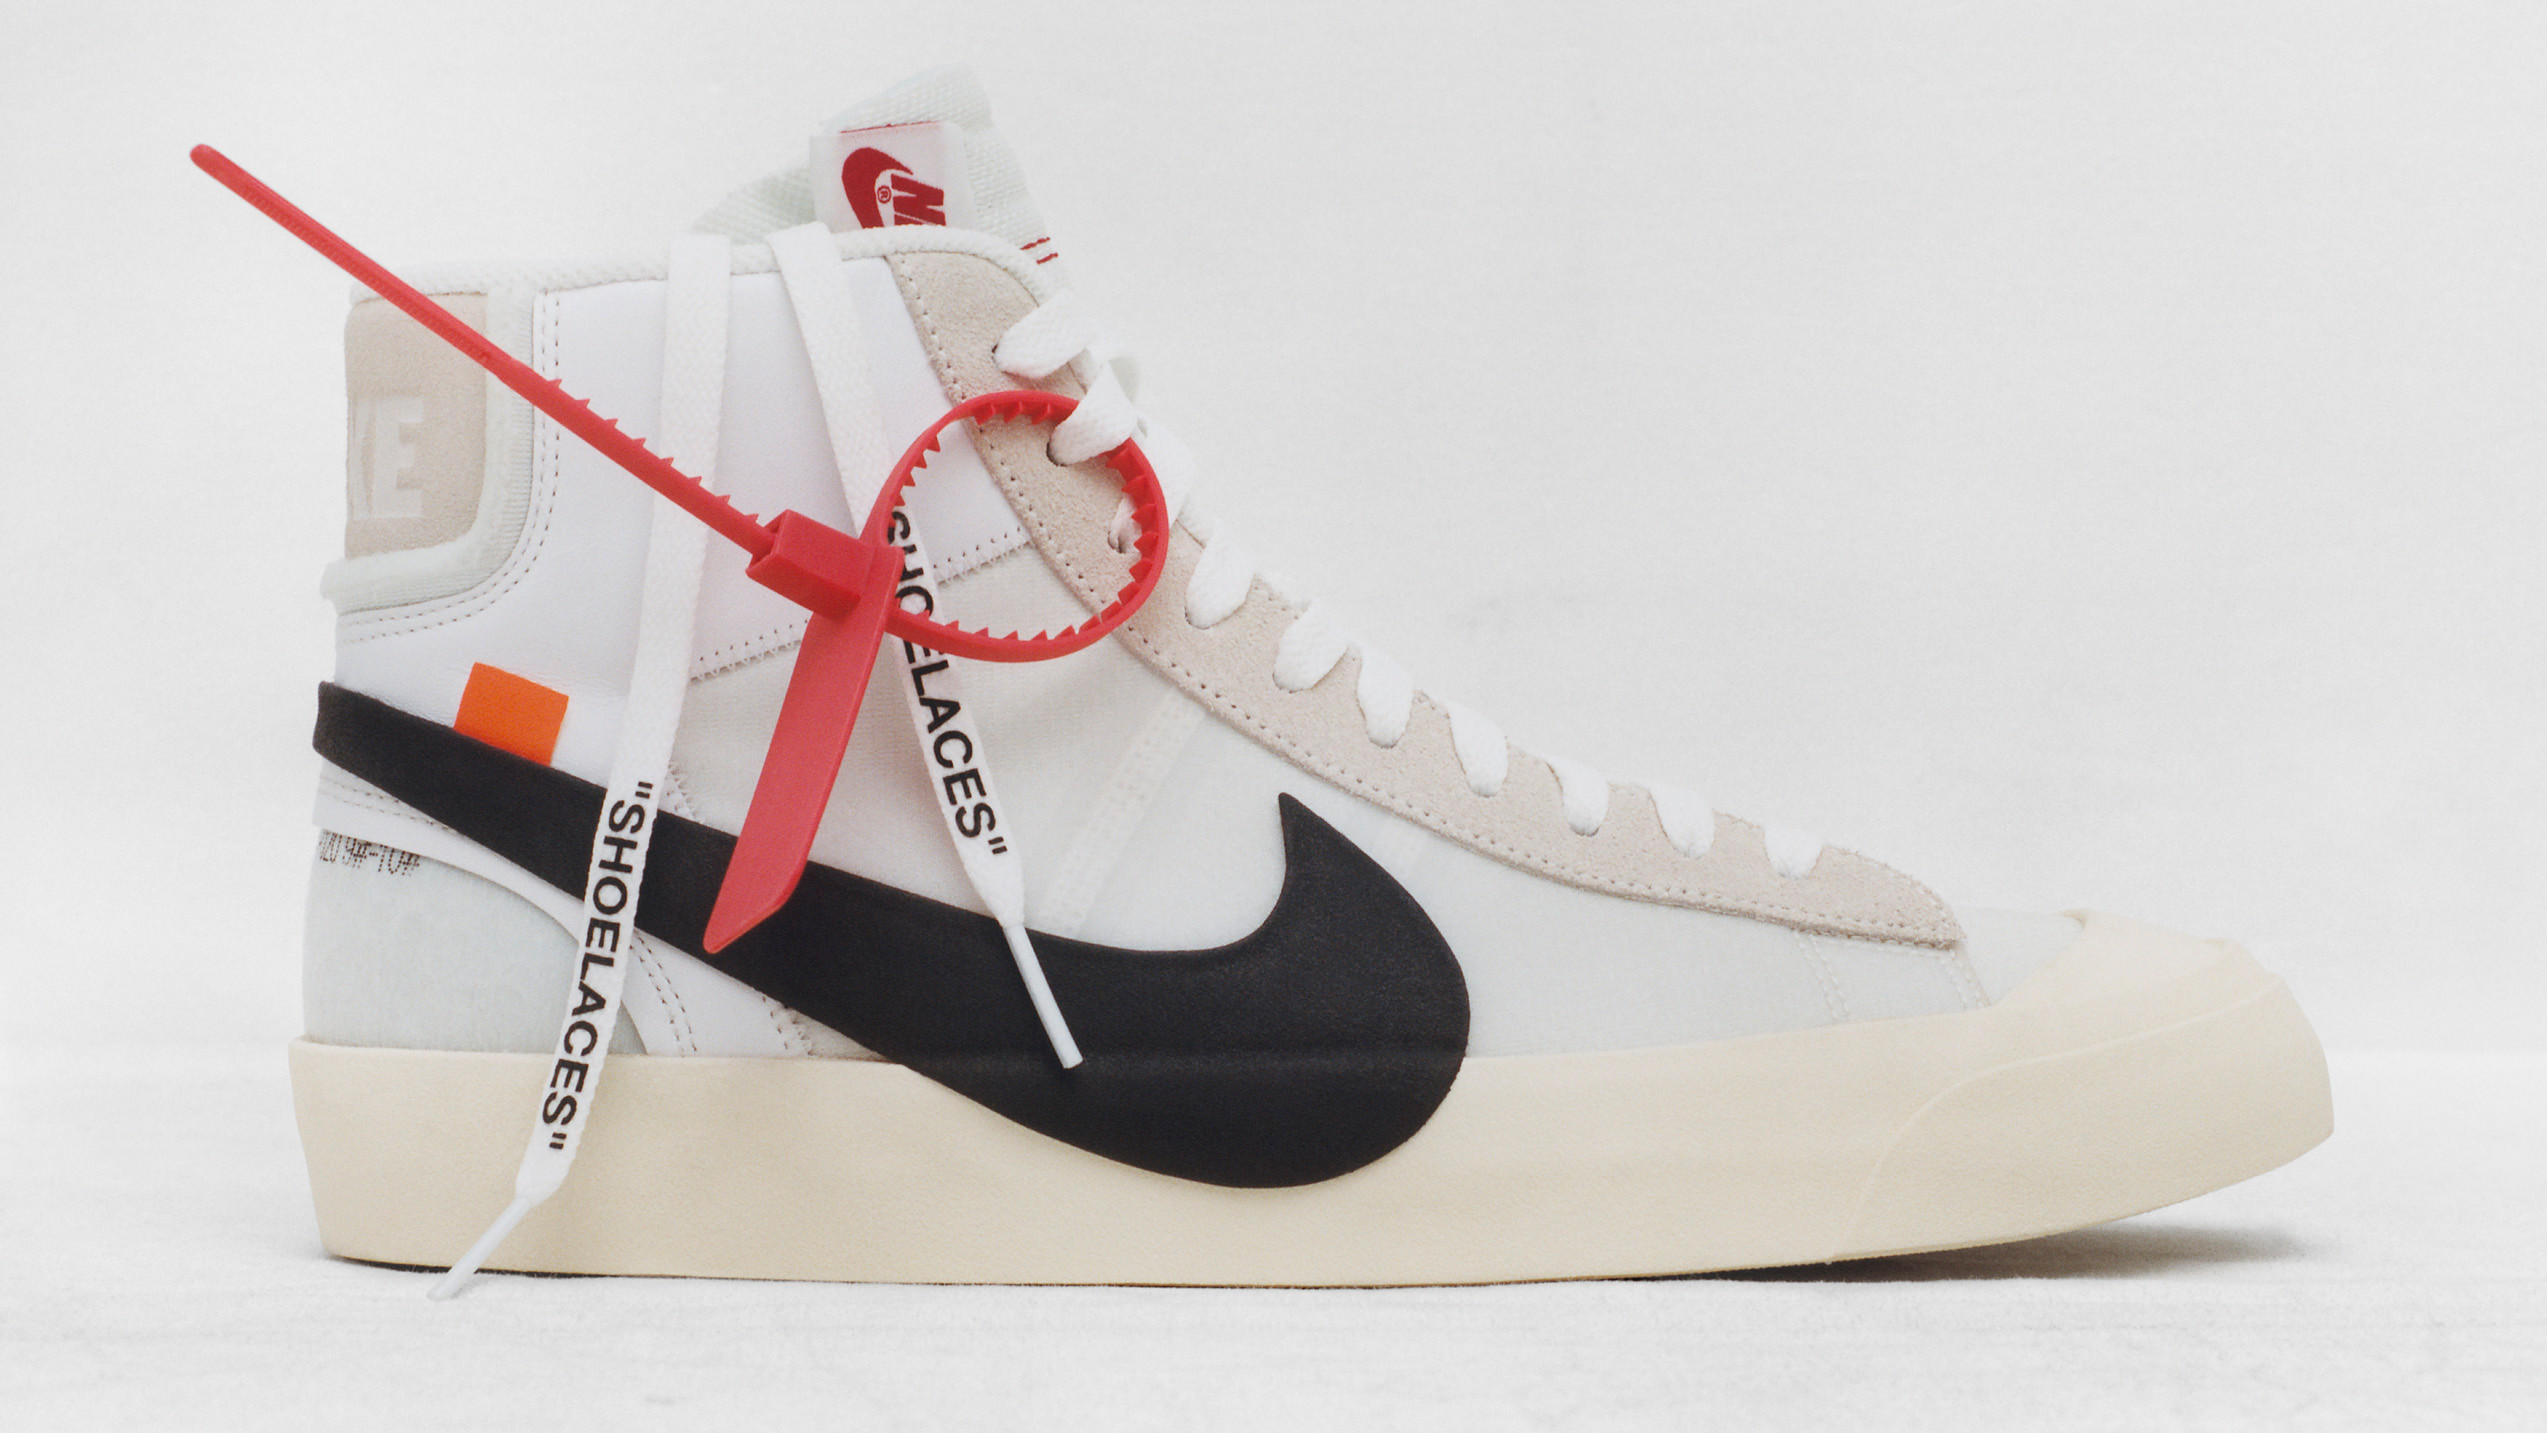 low priced 974d1 120d2 Fake Off White Nike Blazer Sneakers   Sole Collector